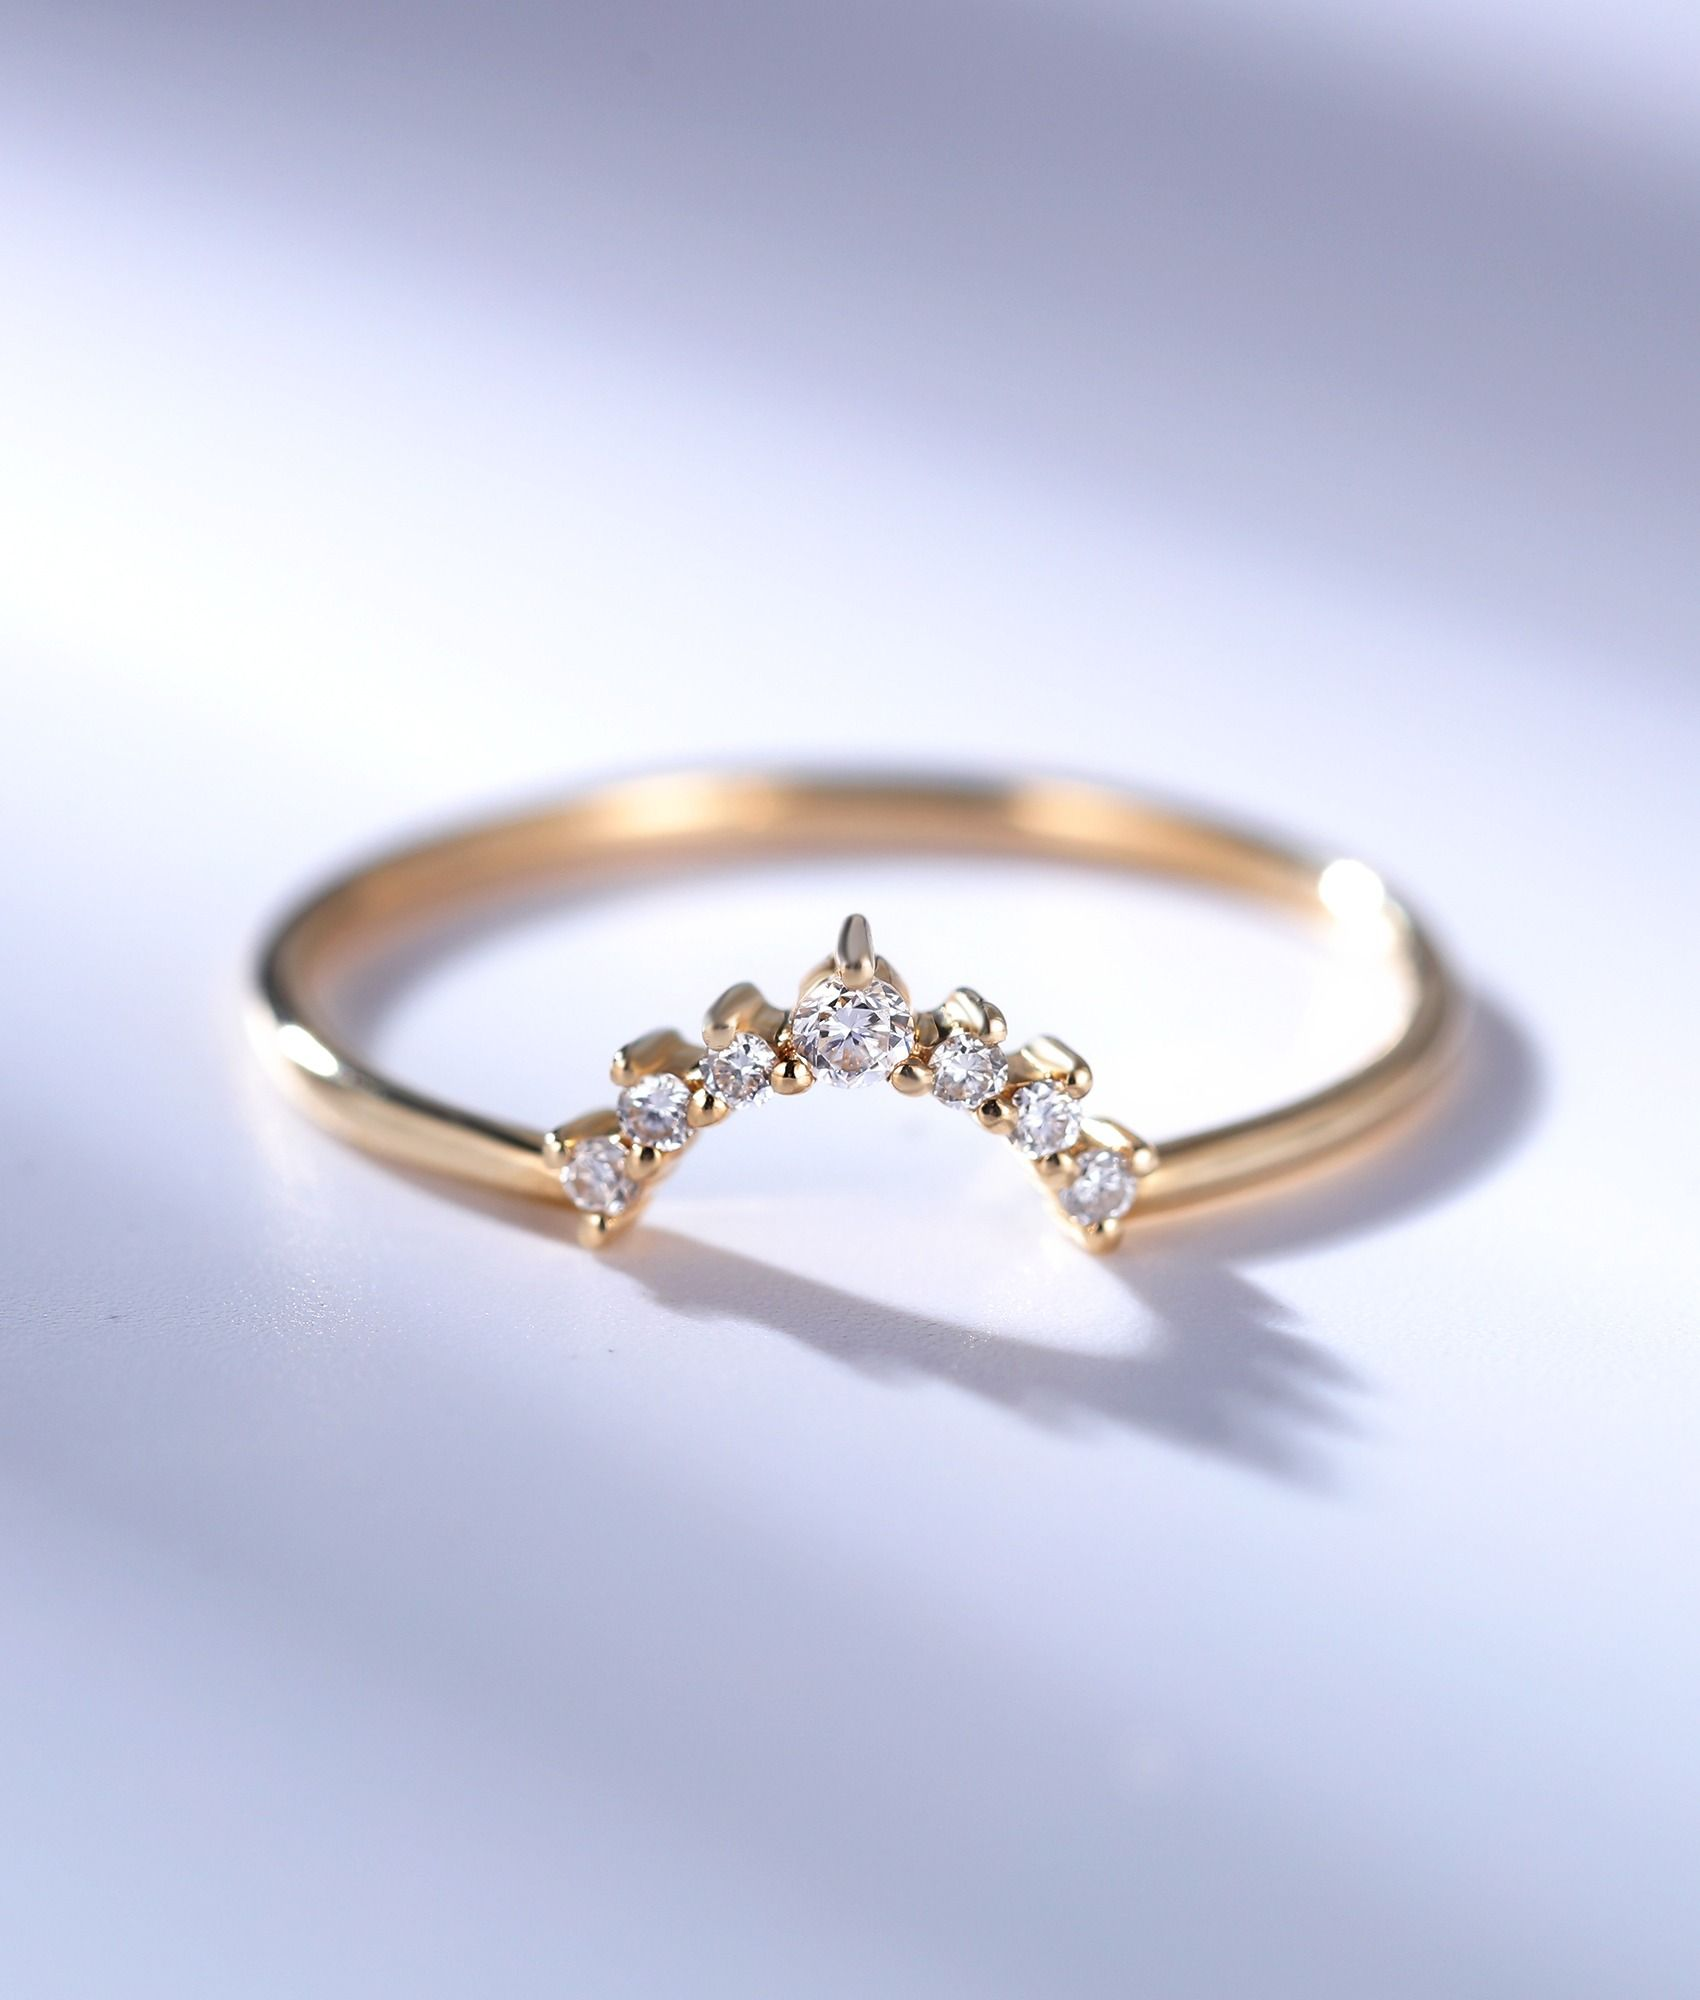 Diamond curved wedding band for women dainty crown solid